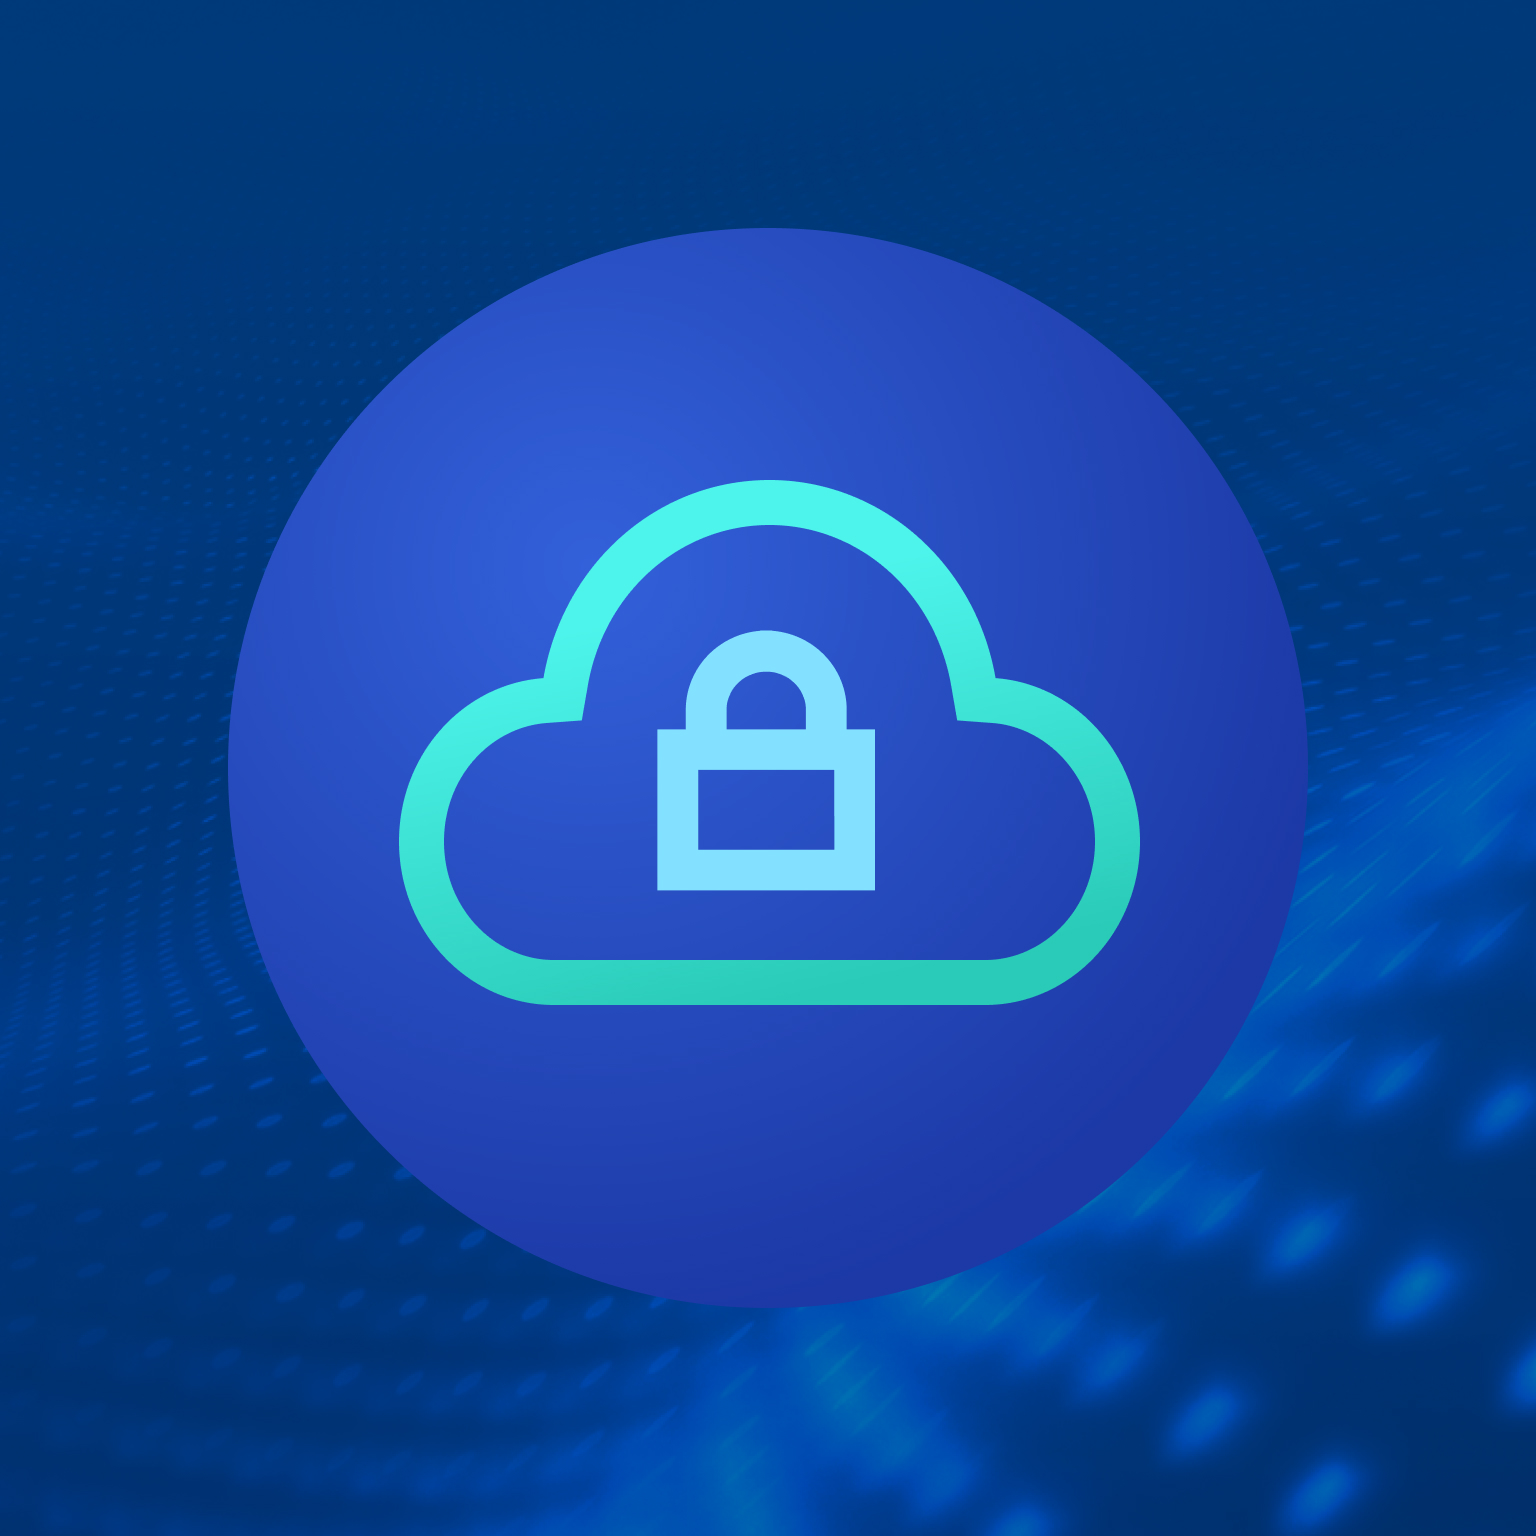 Secure Cloud Processing - Enveil's Never Decrypt security posture allows you to process your most sensitive workloads and data to the Cloud, extending the boundary of the enterprise's trusted compute. Users can securely operate on both encrypted and unencrypted data in the Cloud, on prem, or anywhere in between.